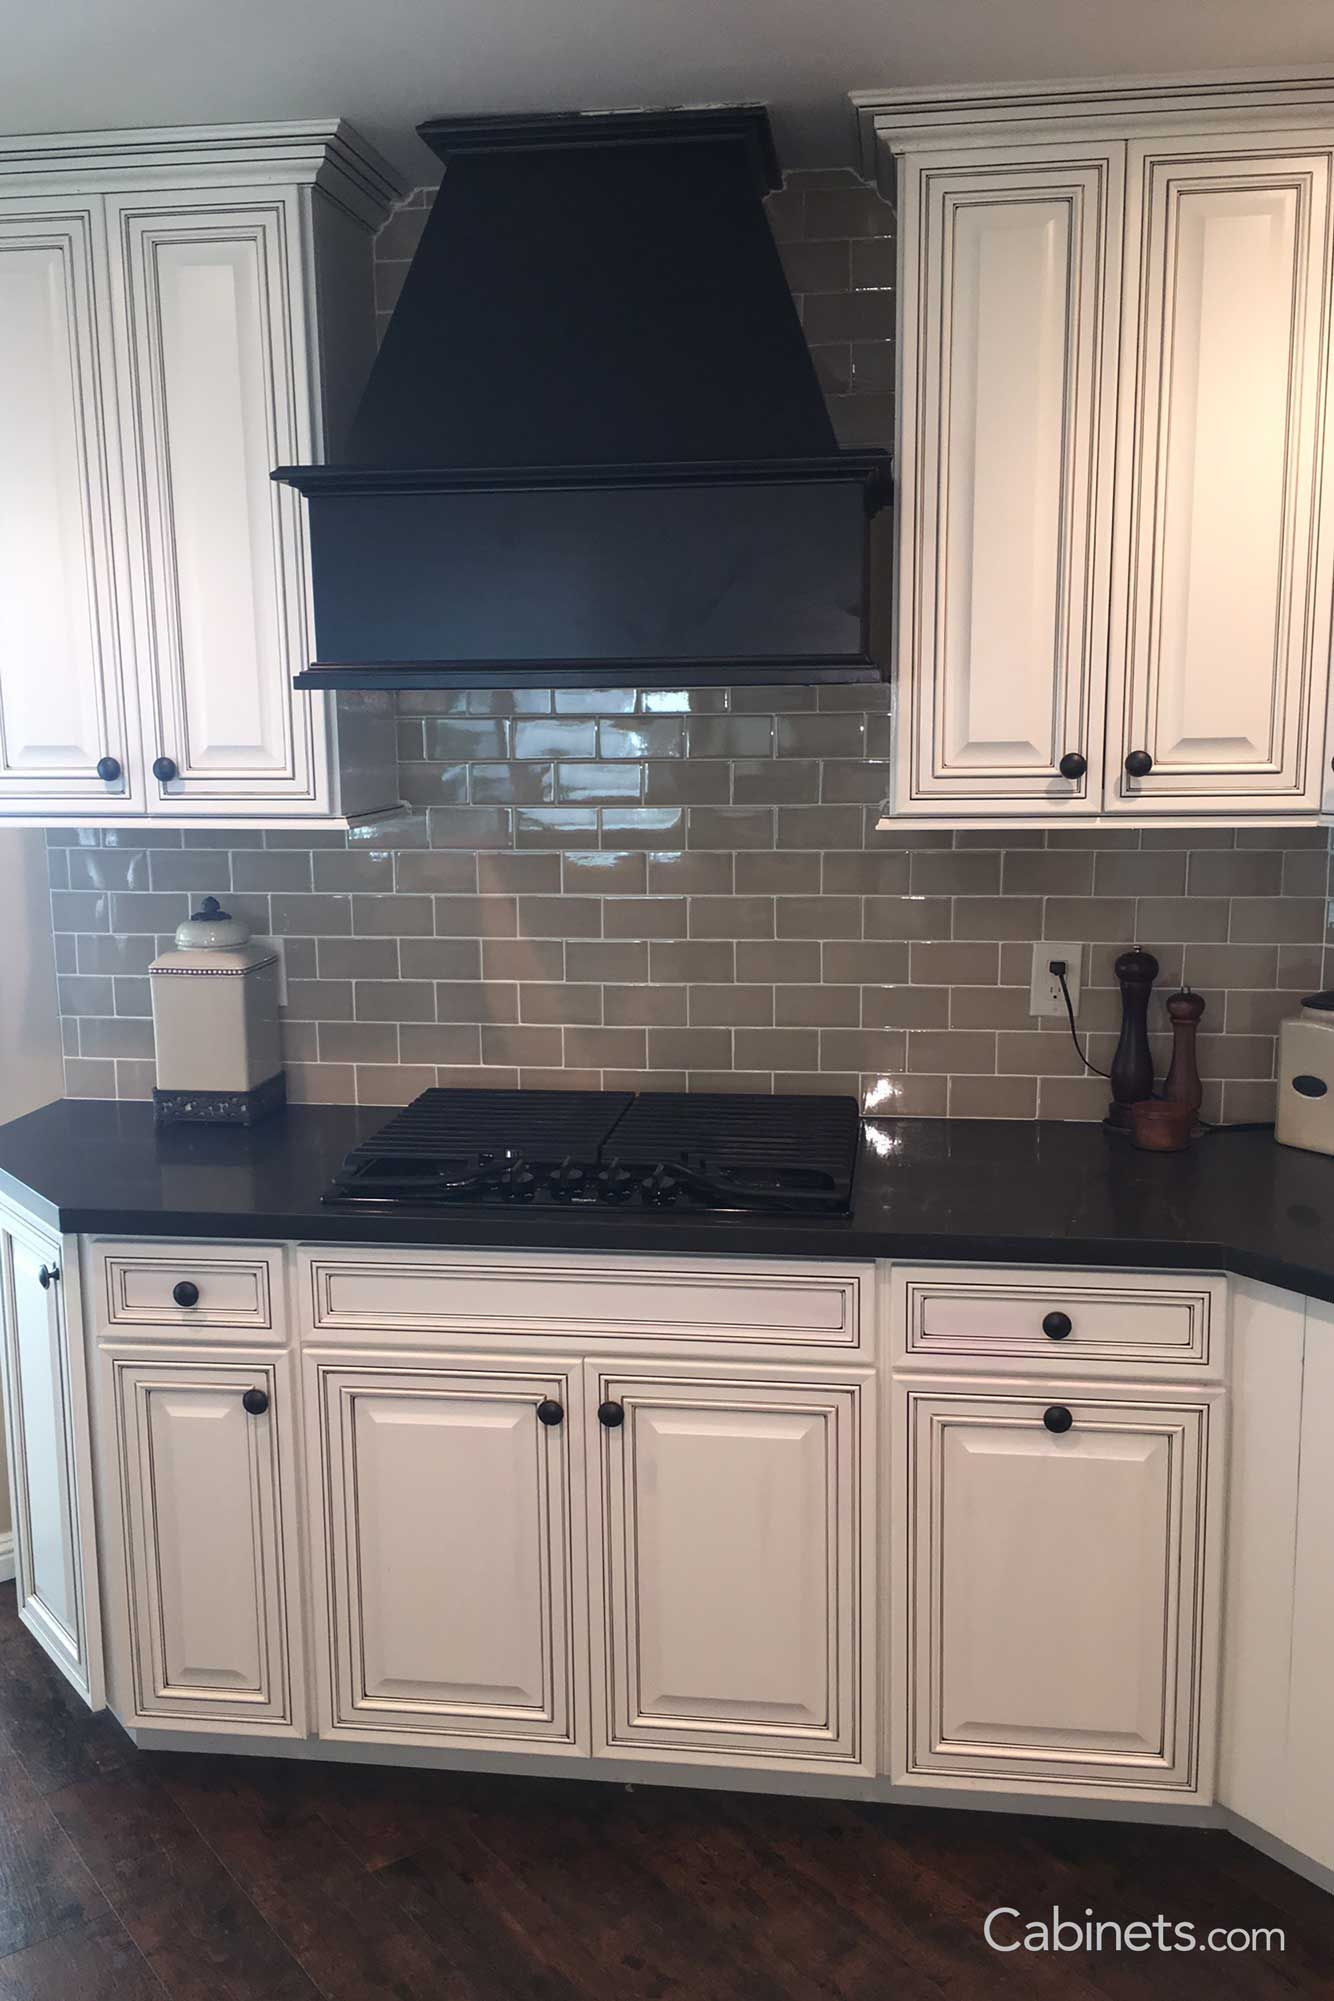 1500 Real Kitchen Photos Cabinets Com Gallery Cabinets Com White Cabinets Black Countertops White Glazed Cabinets Paint Cabinets White